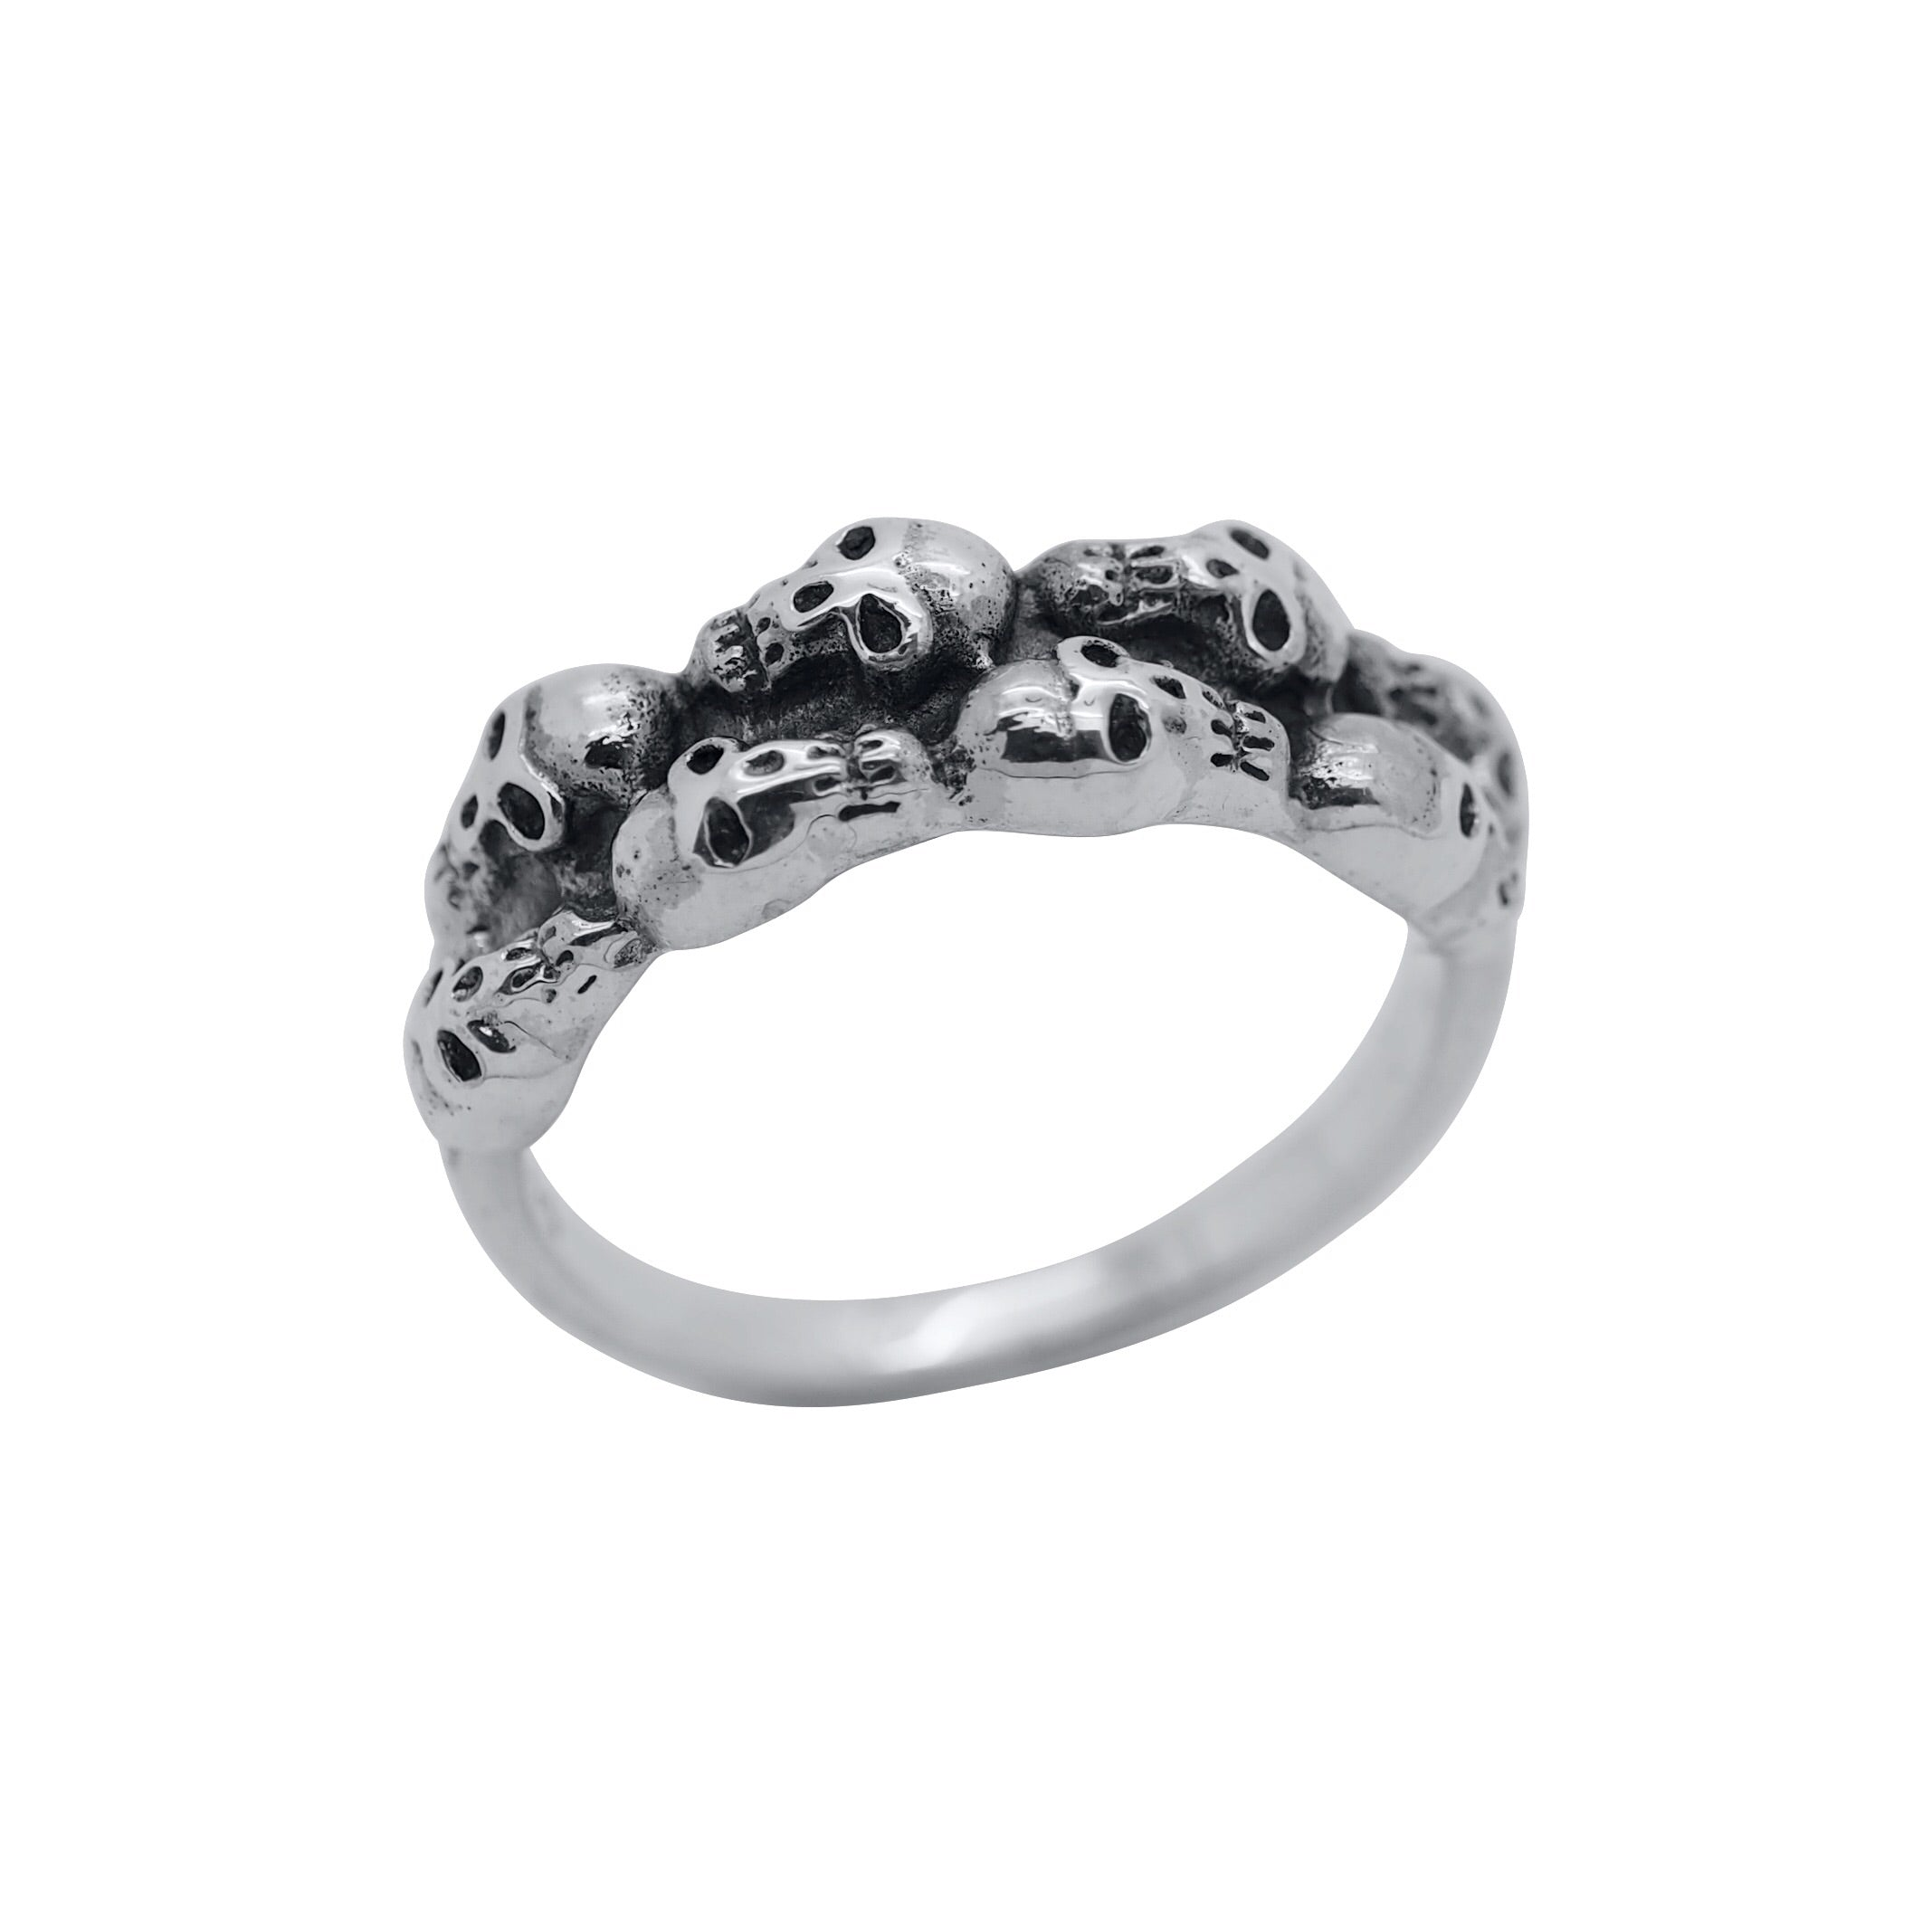 Sterling Silver Catacomb Ring